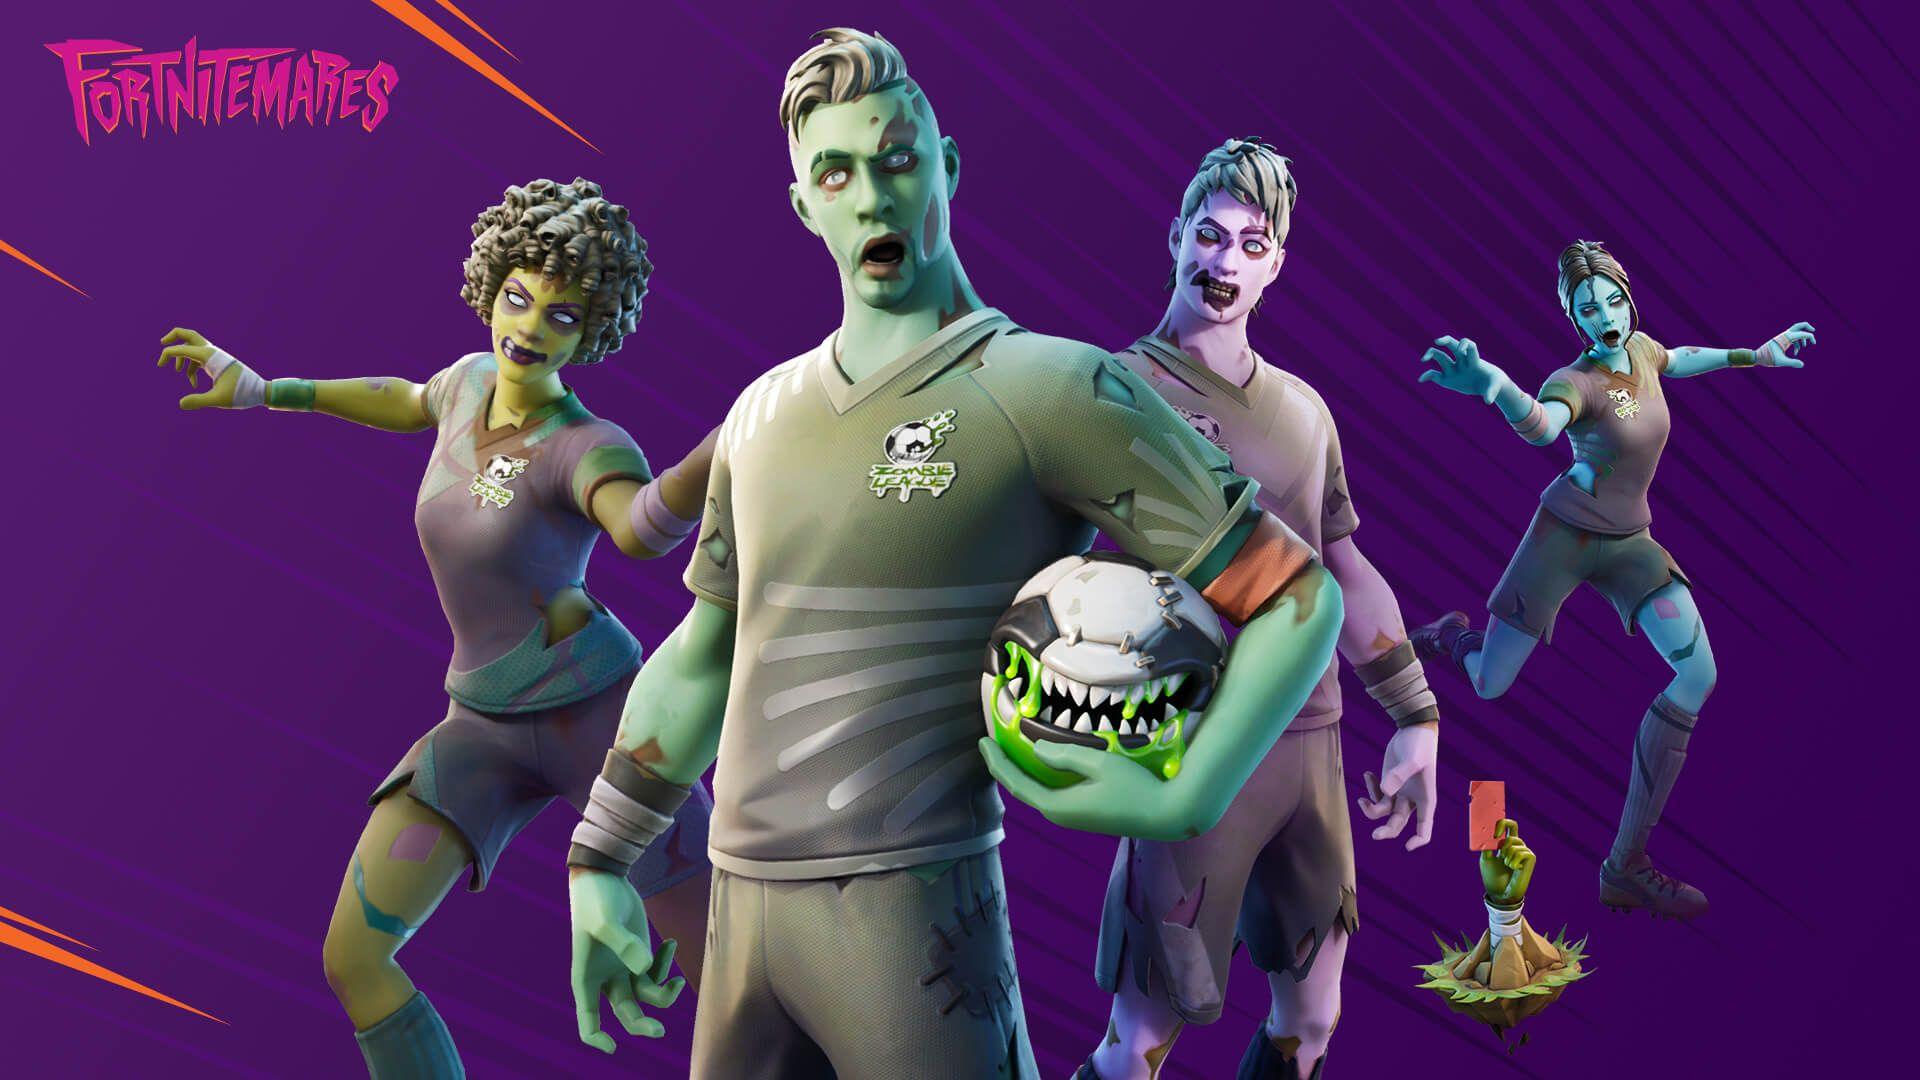 Fortnitemares 2019 Event Storm King Ltm Challenges Rewards More Epic Games Have Released A Post Outlining What This Fortnite Fortnite New Zombie Storm King